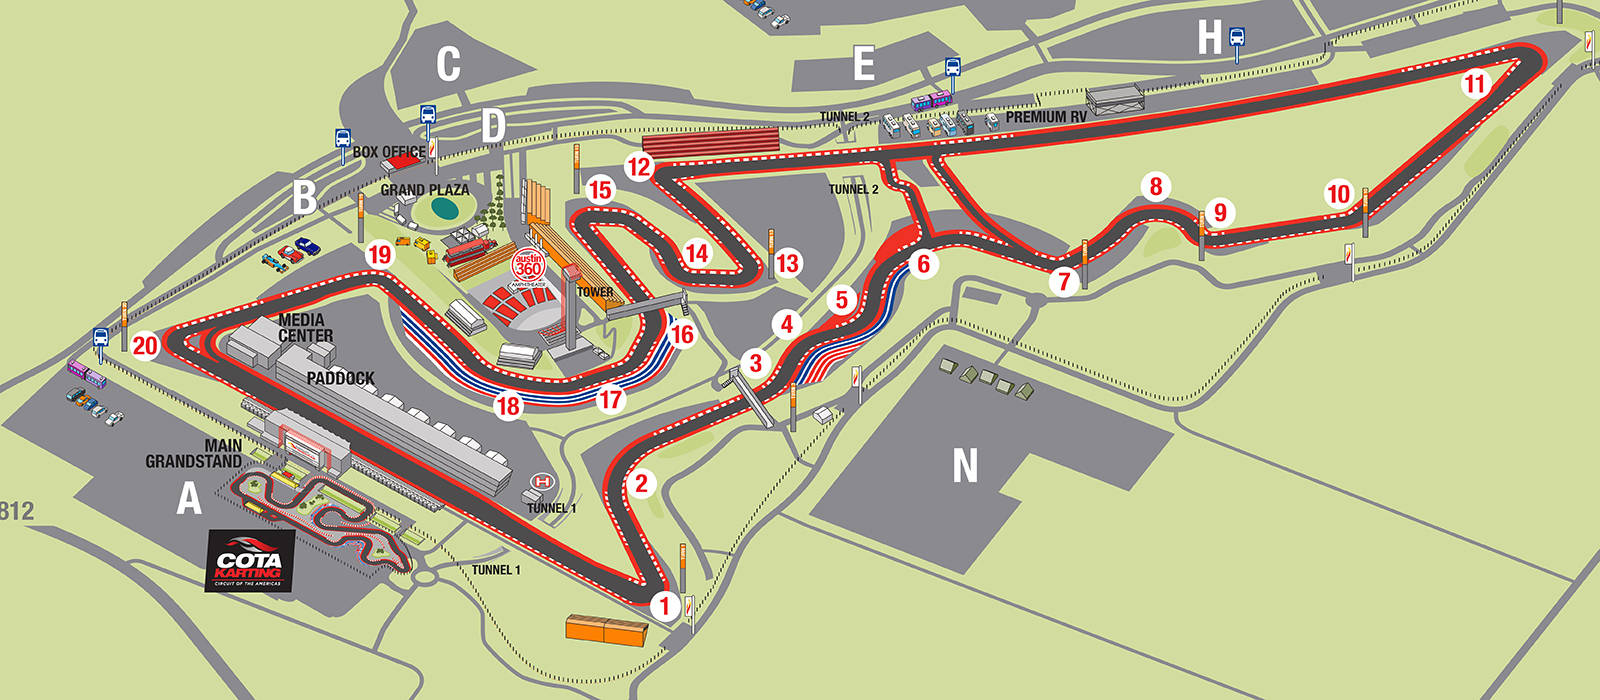 COTA-Karting-Map.jpg#asset:454055